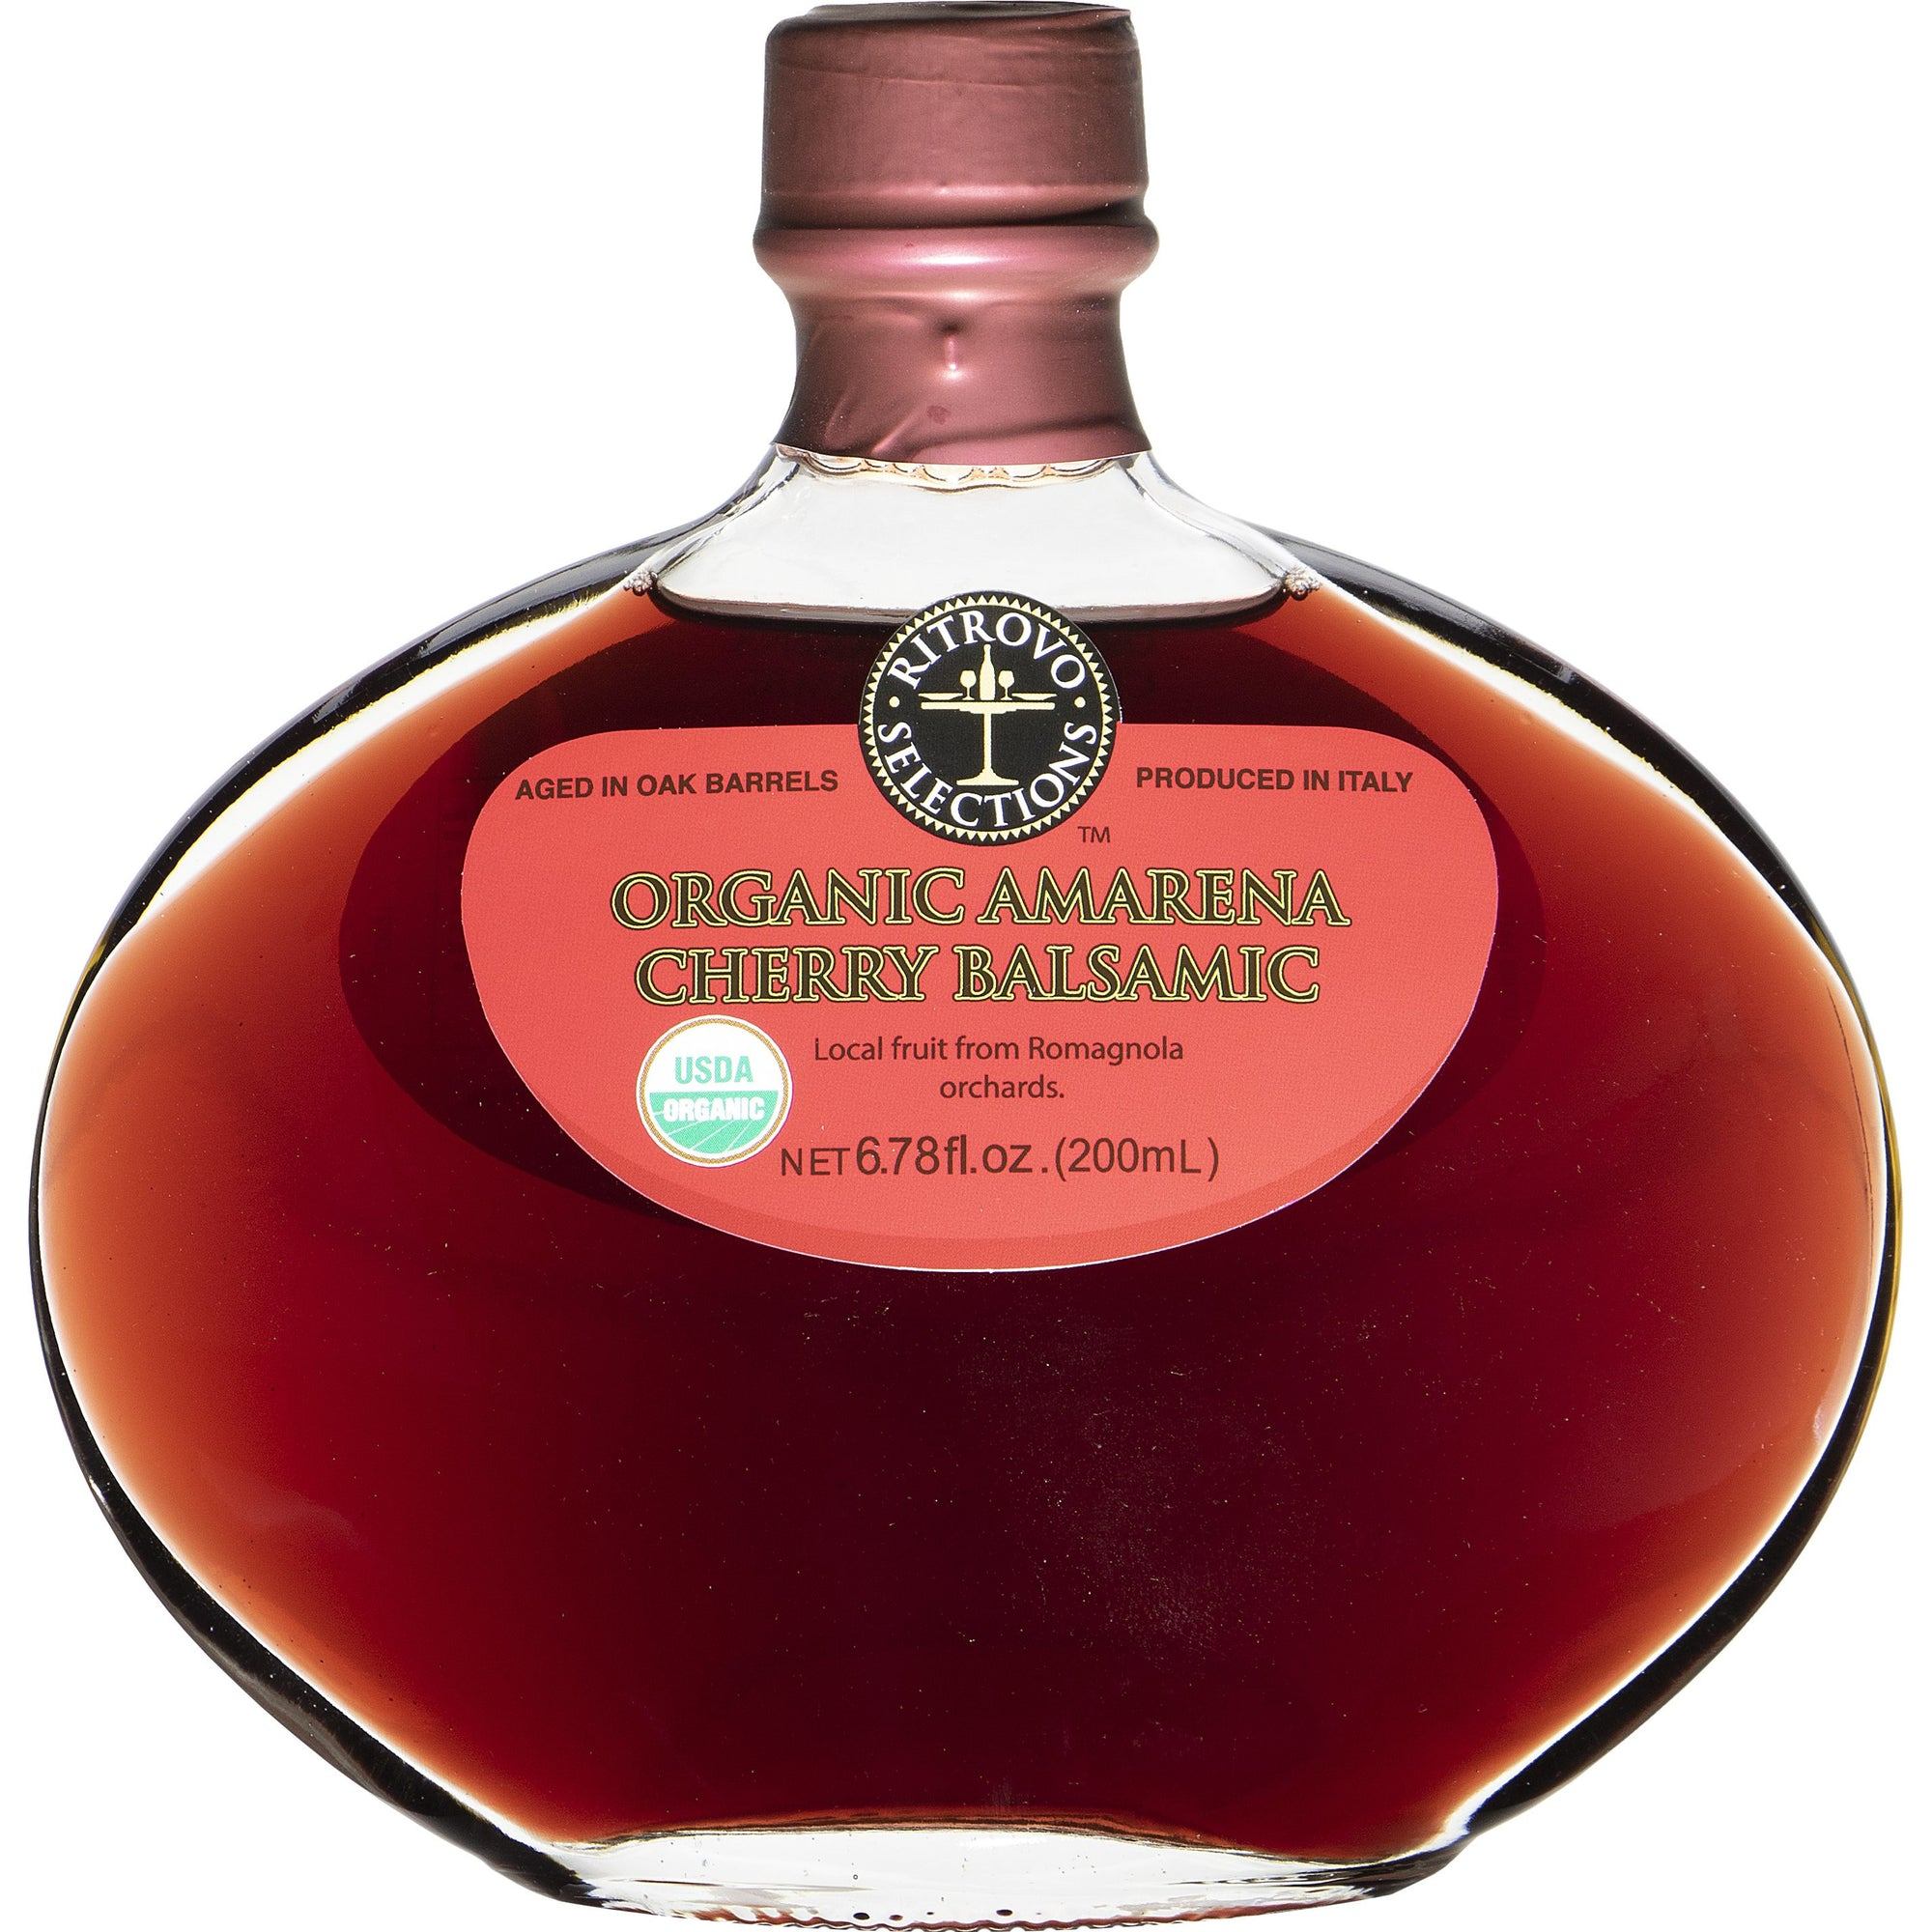 Ritrovo Selections Organic Amarena Cherry Balsamic 200mL